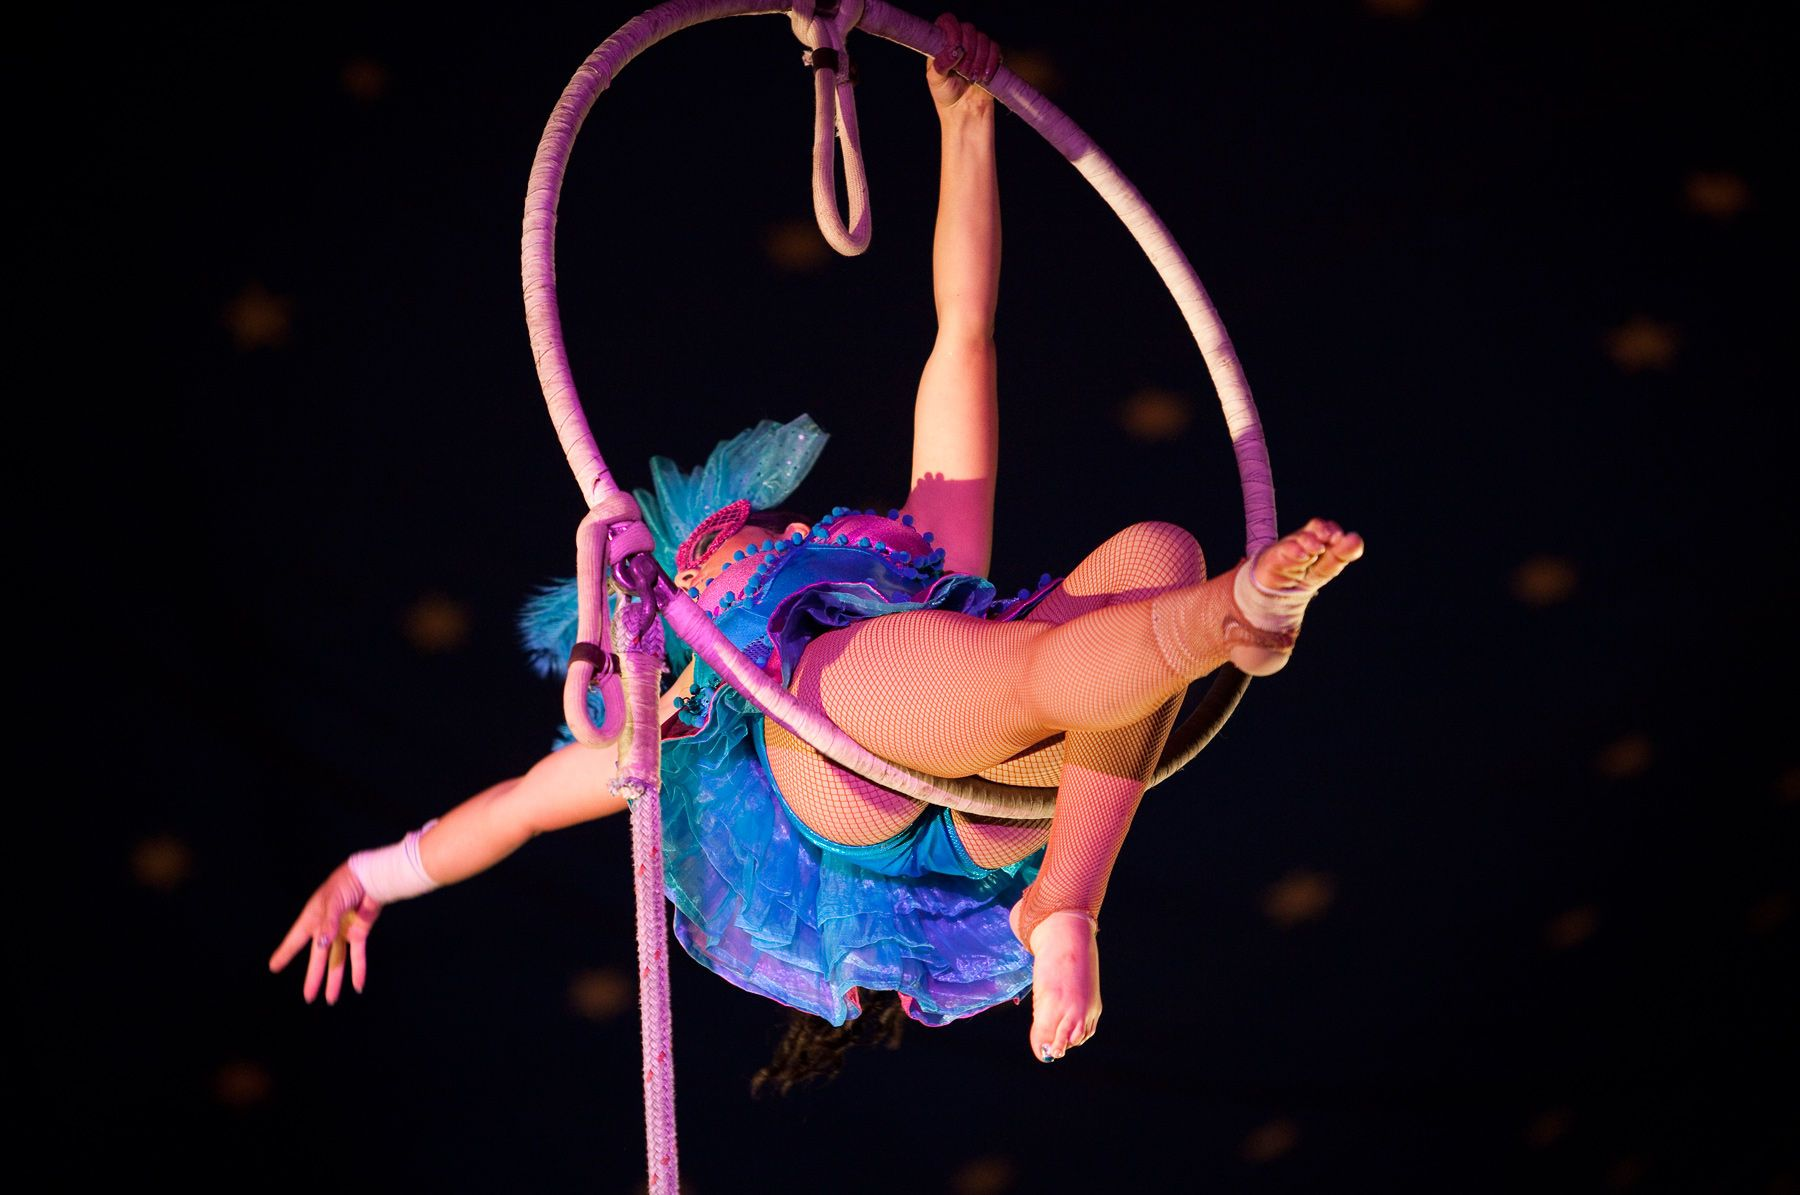 The Cole Brothers Circus, now in its 129th edition, travels to 100 cities in 20-25 states and stages 250 shows a year. For Reuters